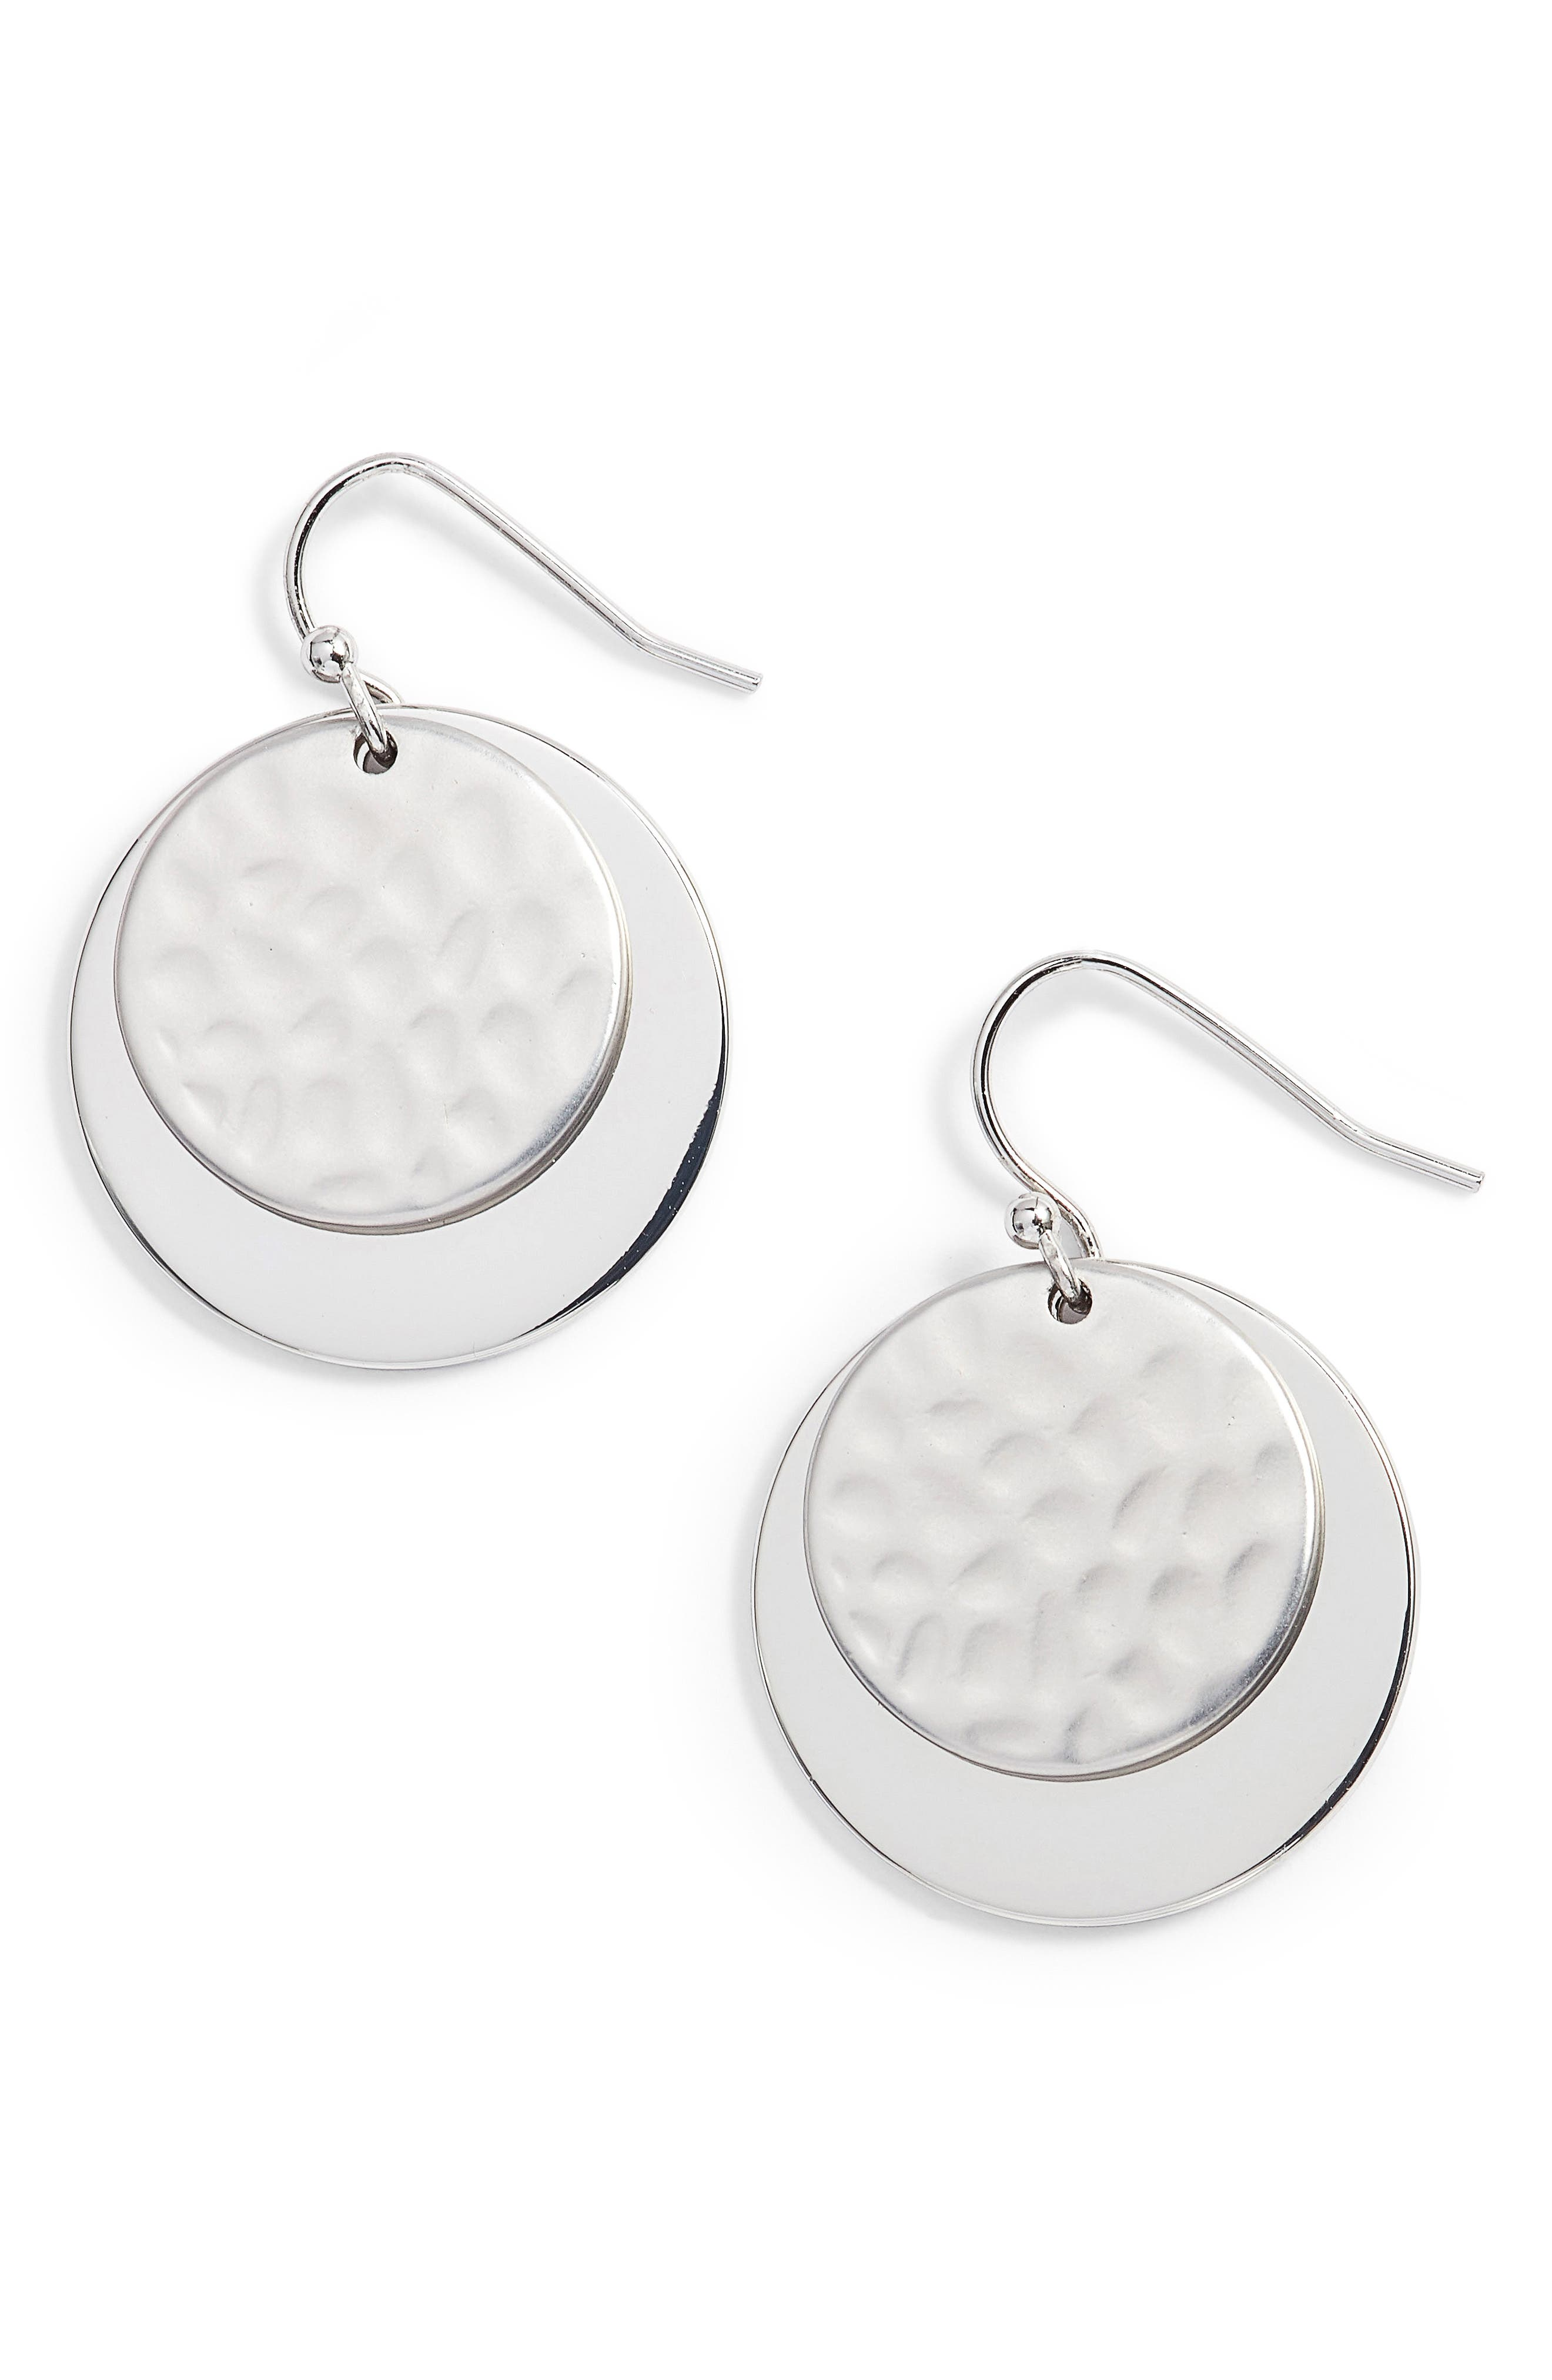 Hammered Metal Double Disc Earrings,                             Main thumbnail 1, color,                             040